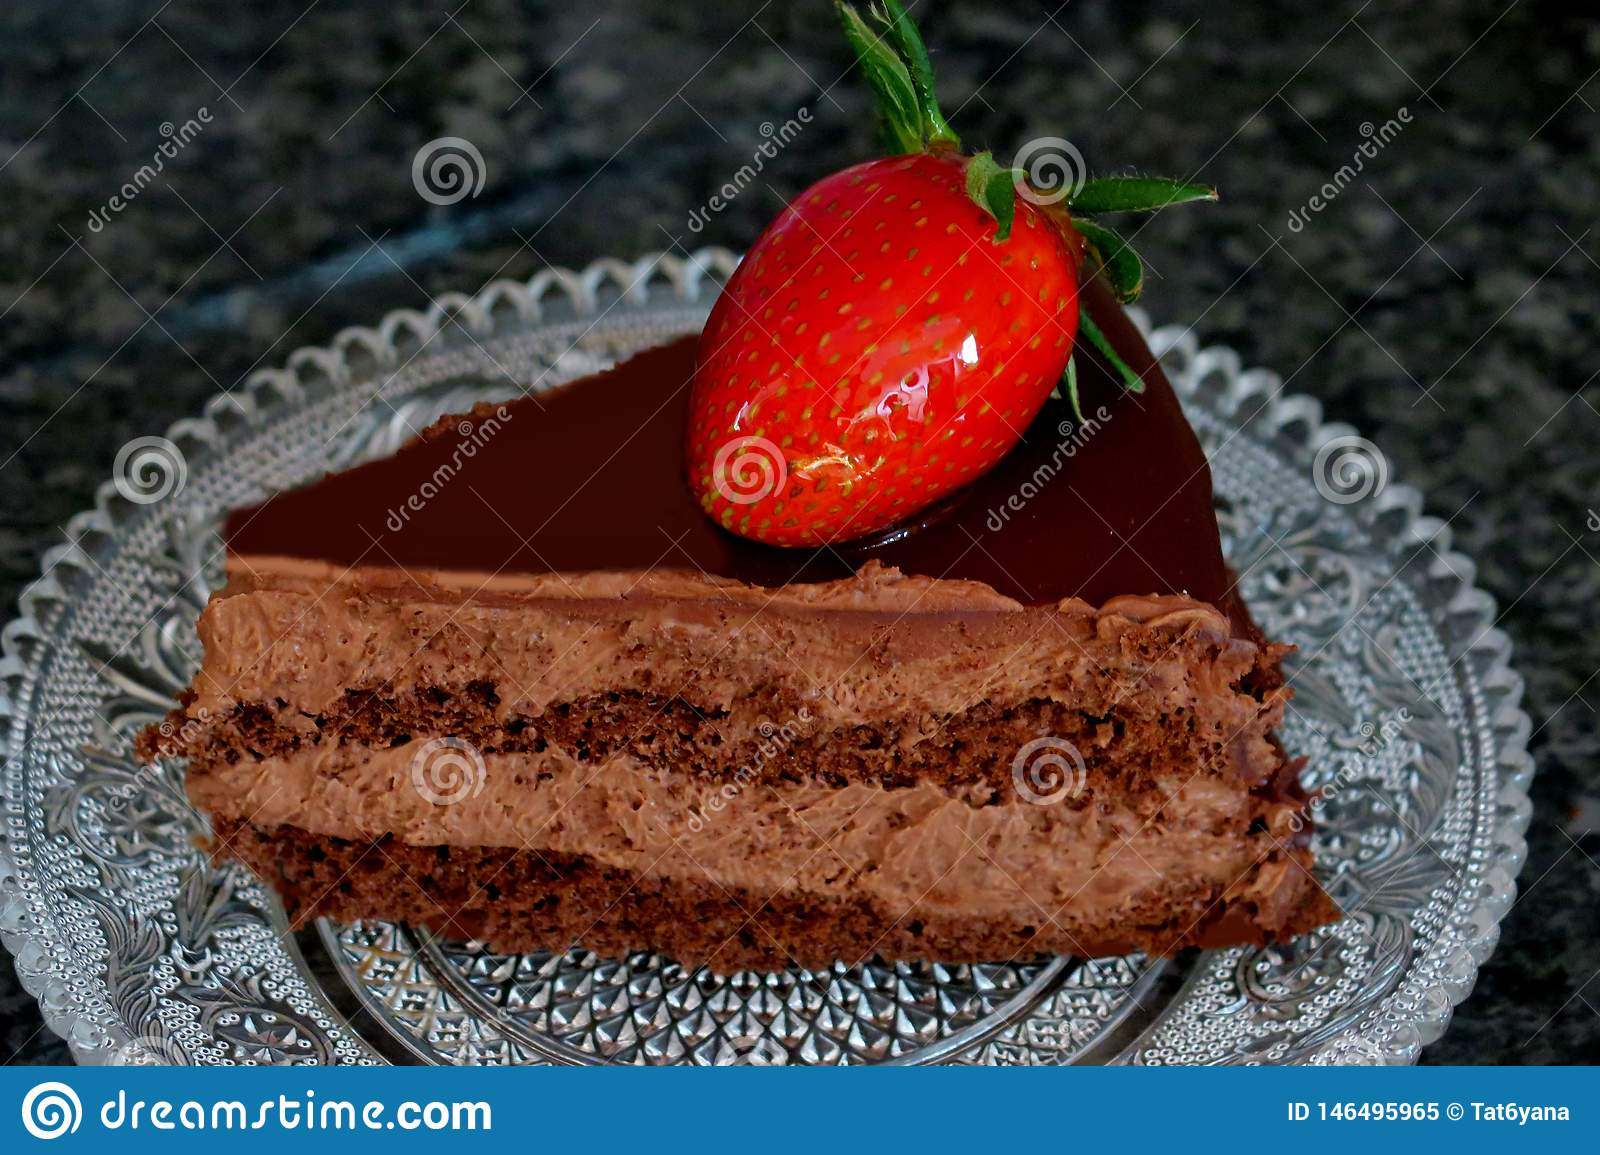 Chocolate cake with cocoa cream and strawberries